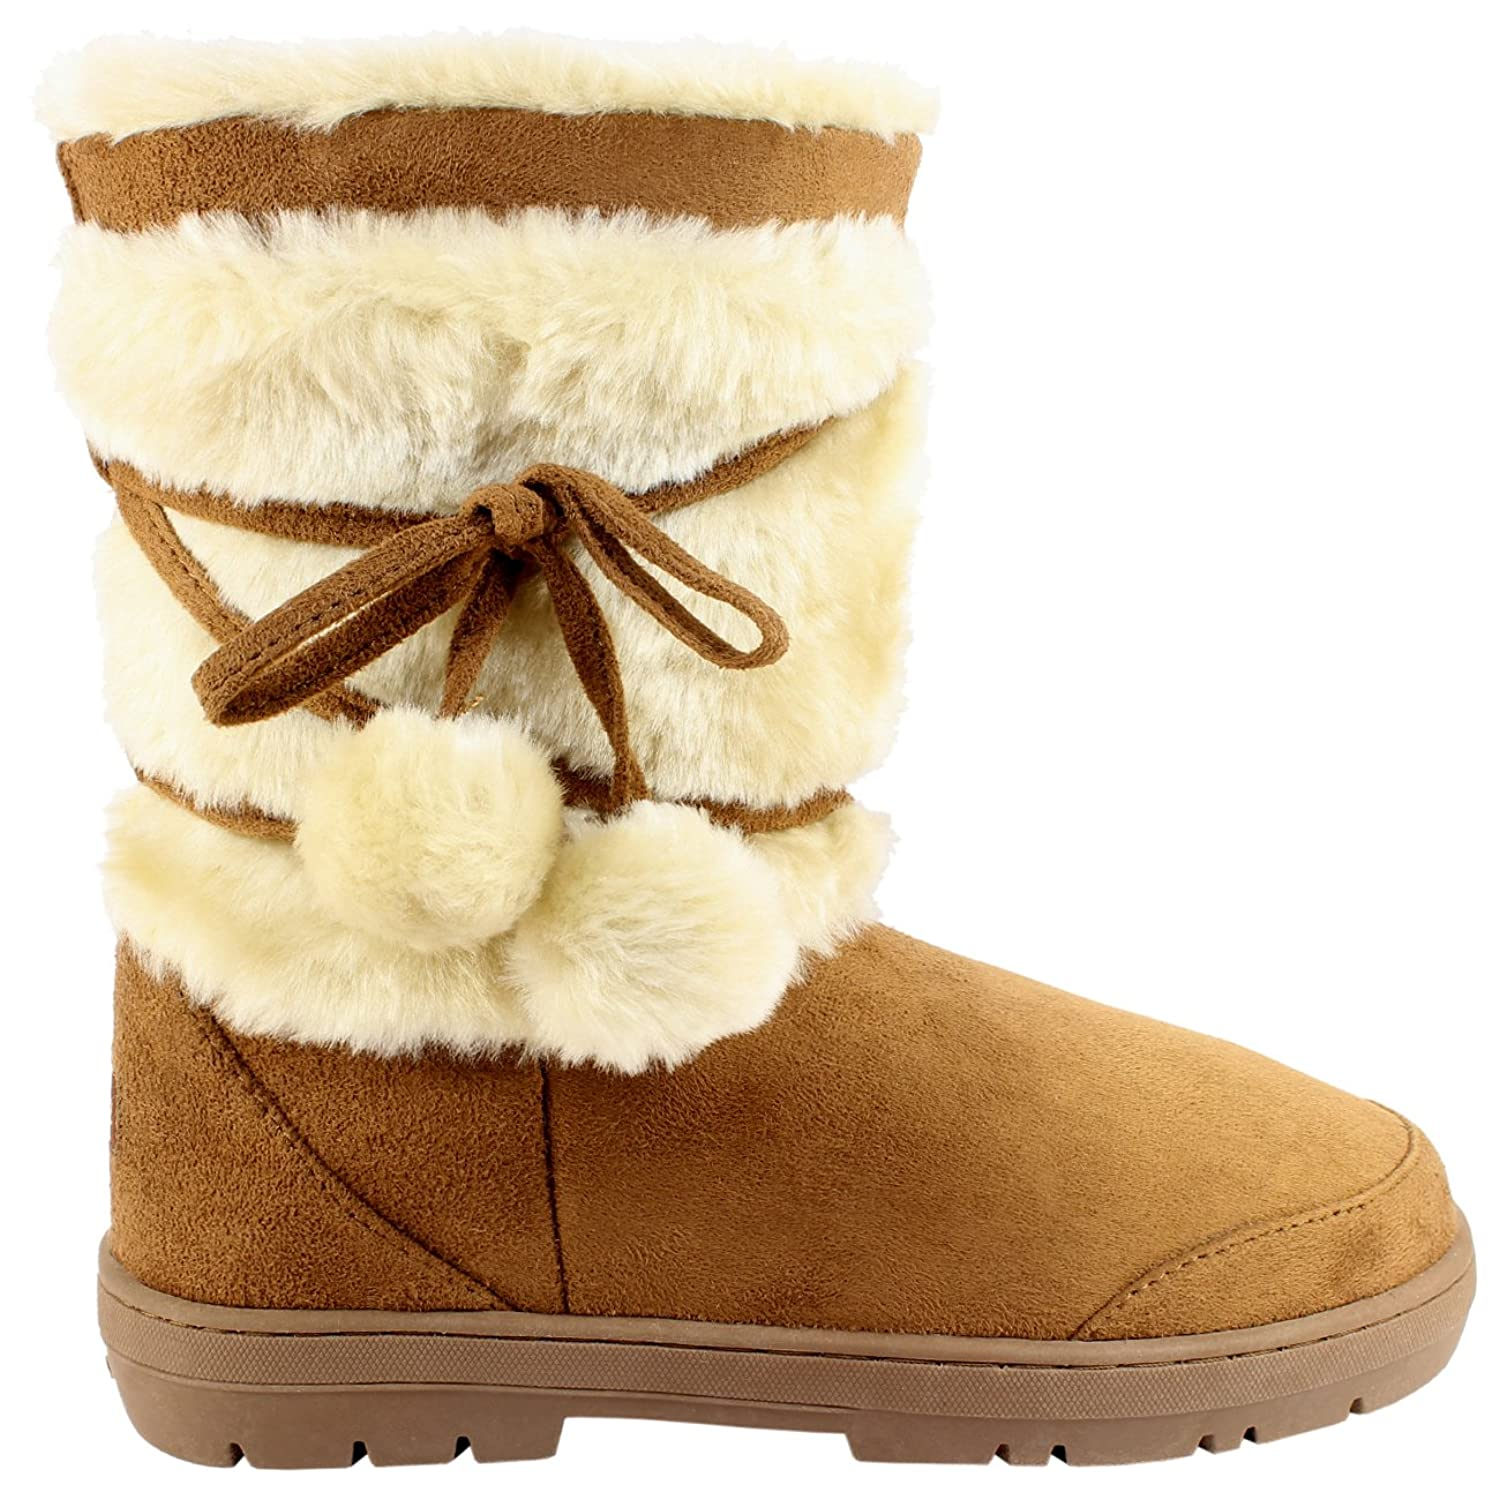 Womens Fur Lined Thick Sole Winter Snow Bobble Boots